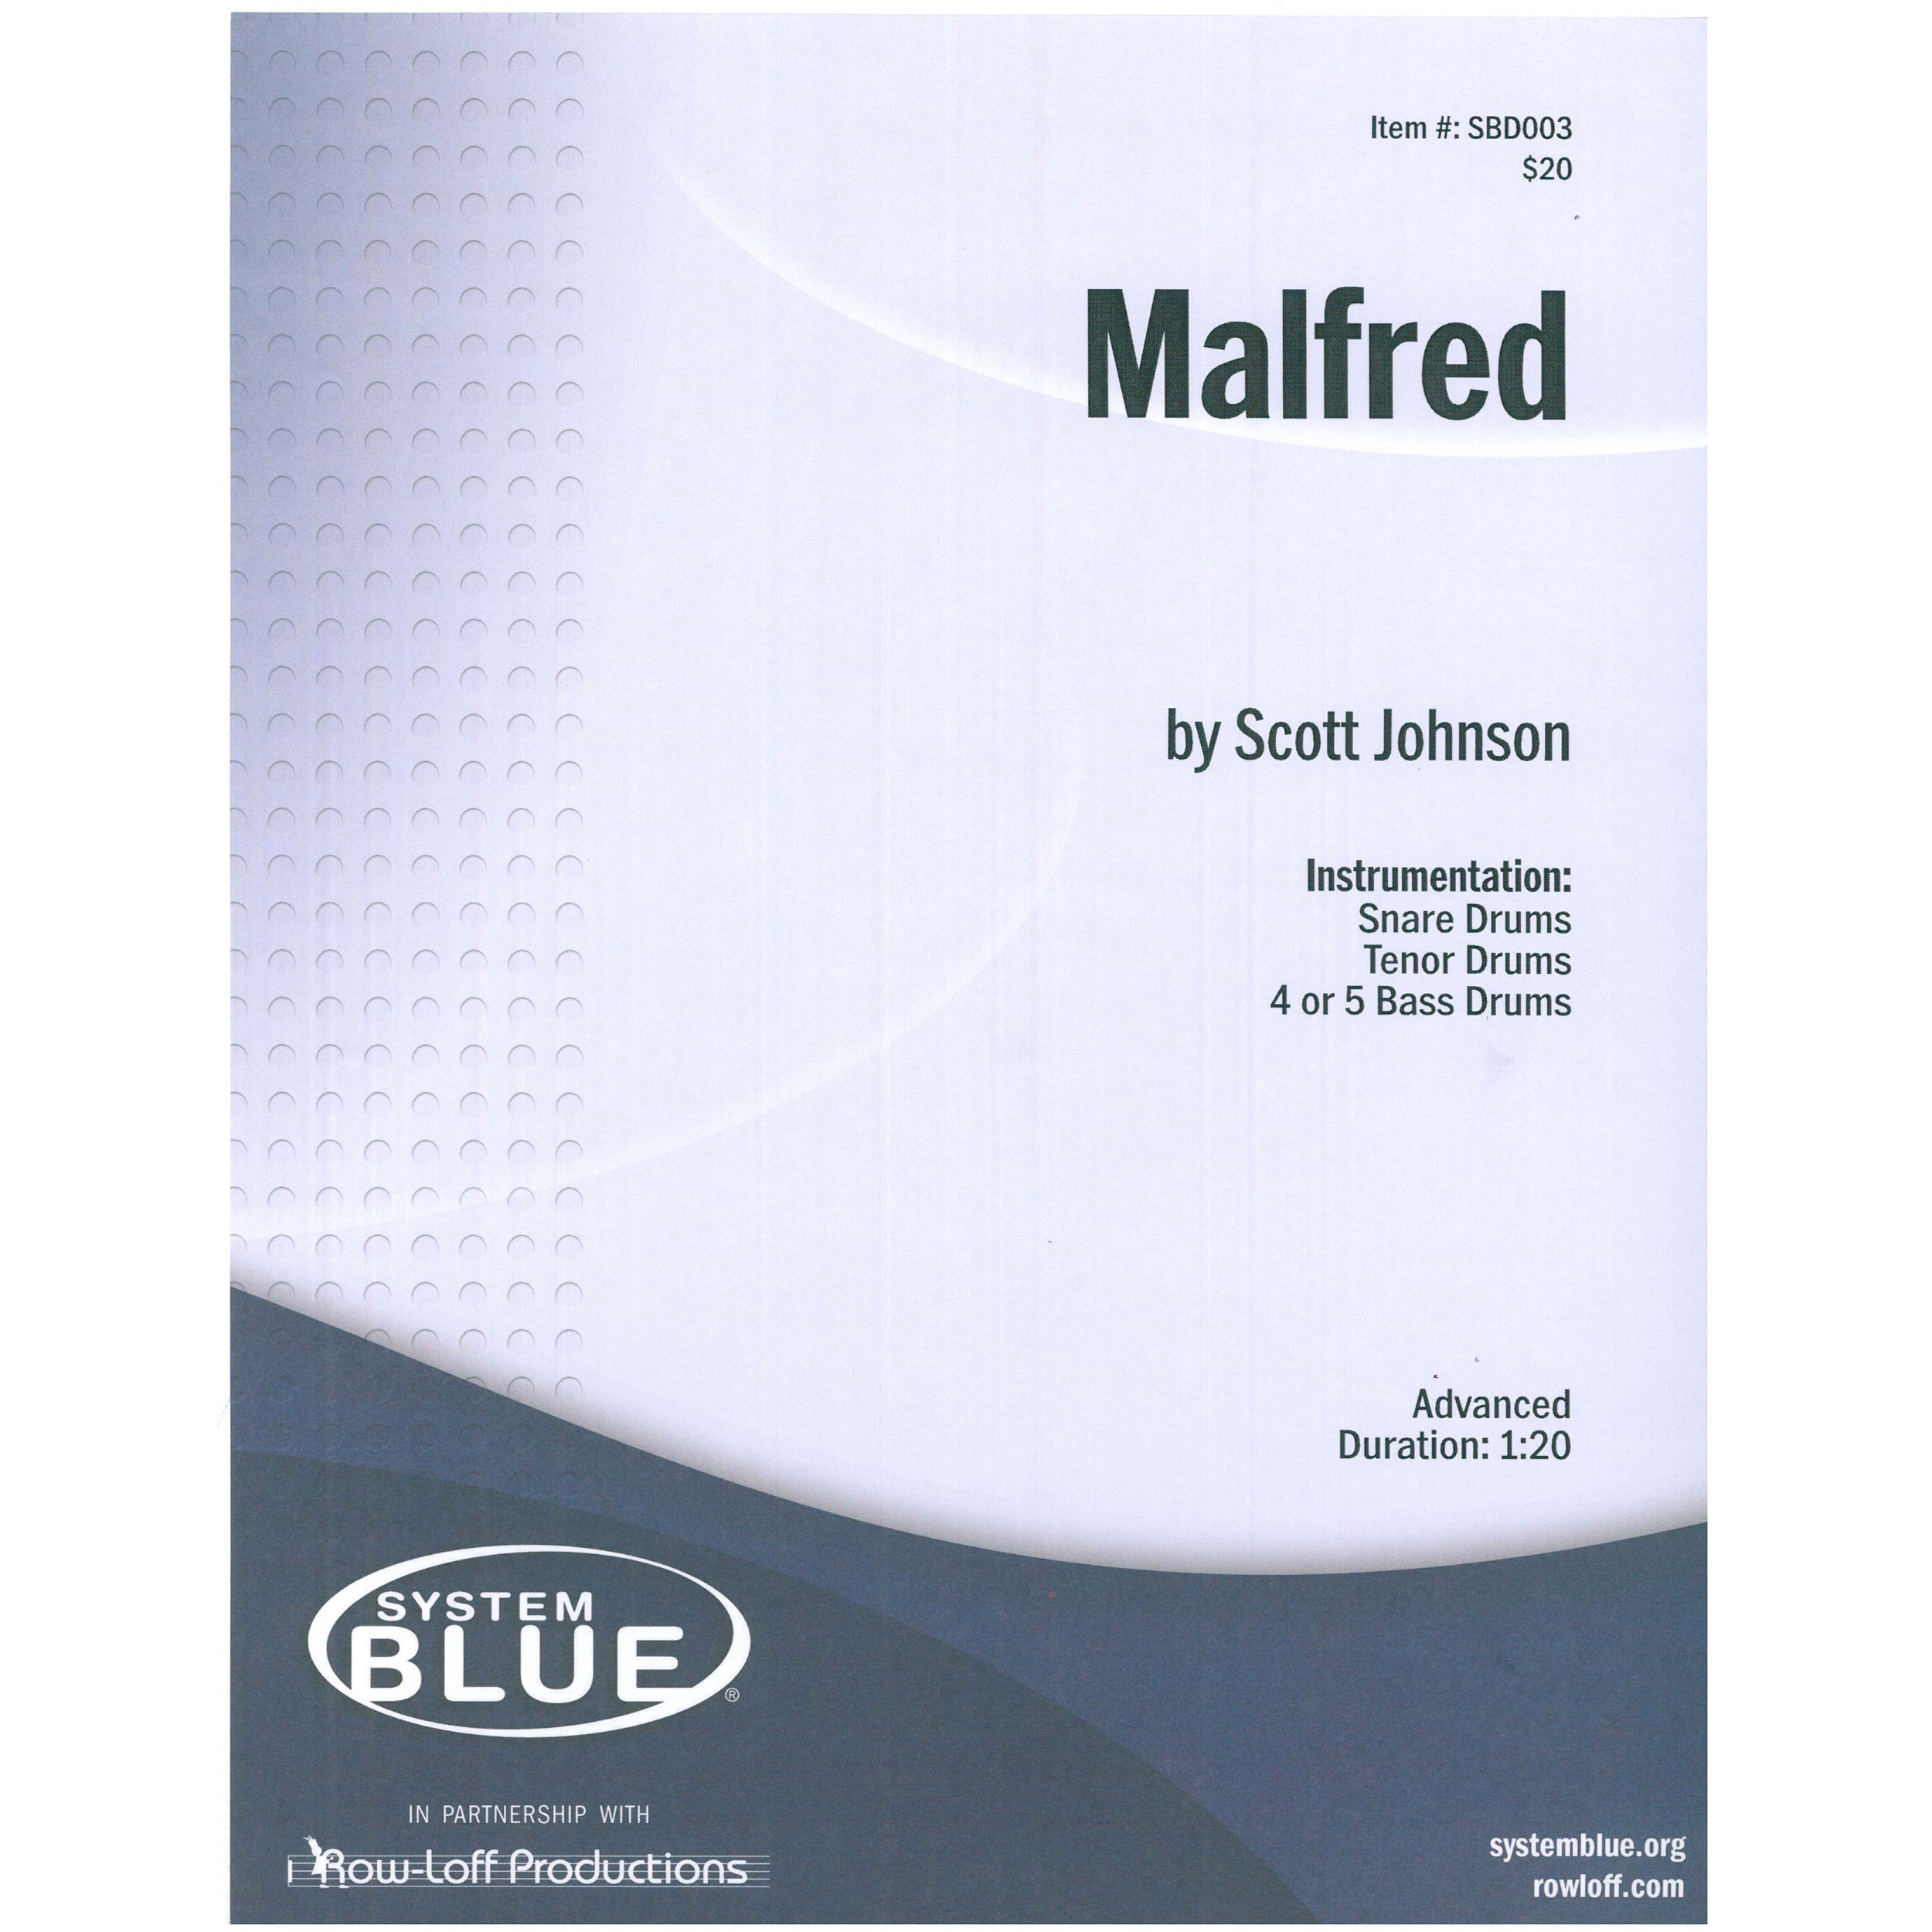 Malfred by Scott Johnson